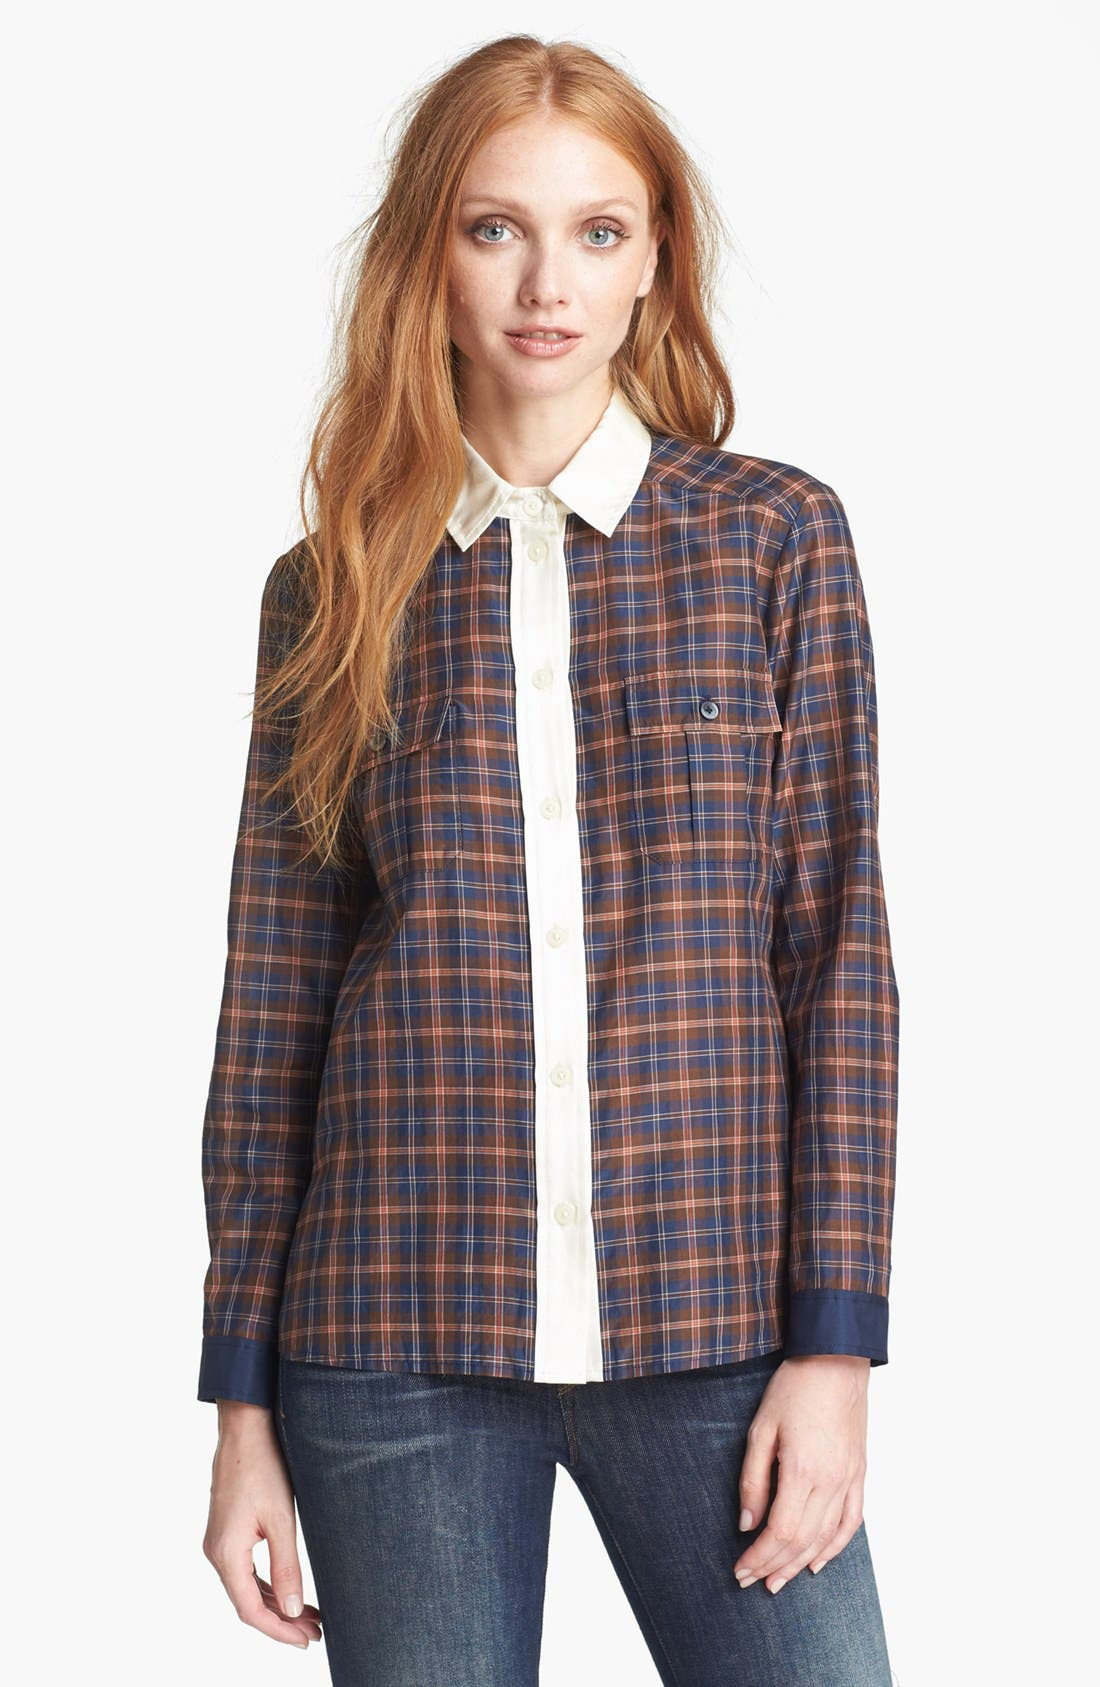 Alternate Image 1 Selected - MARC BY MARC JACOBS 'Abigail' Plaid Shirt